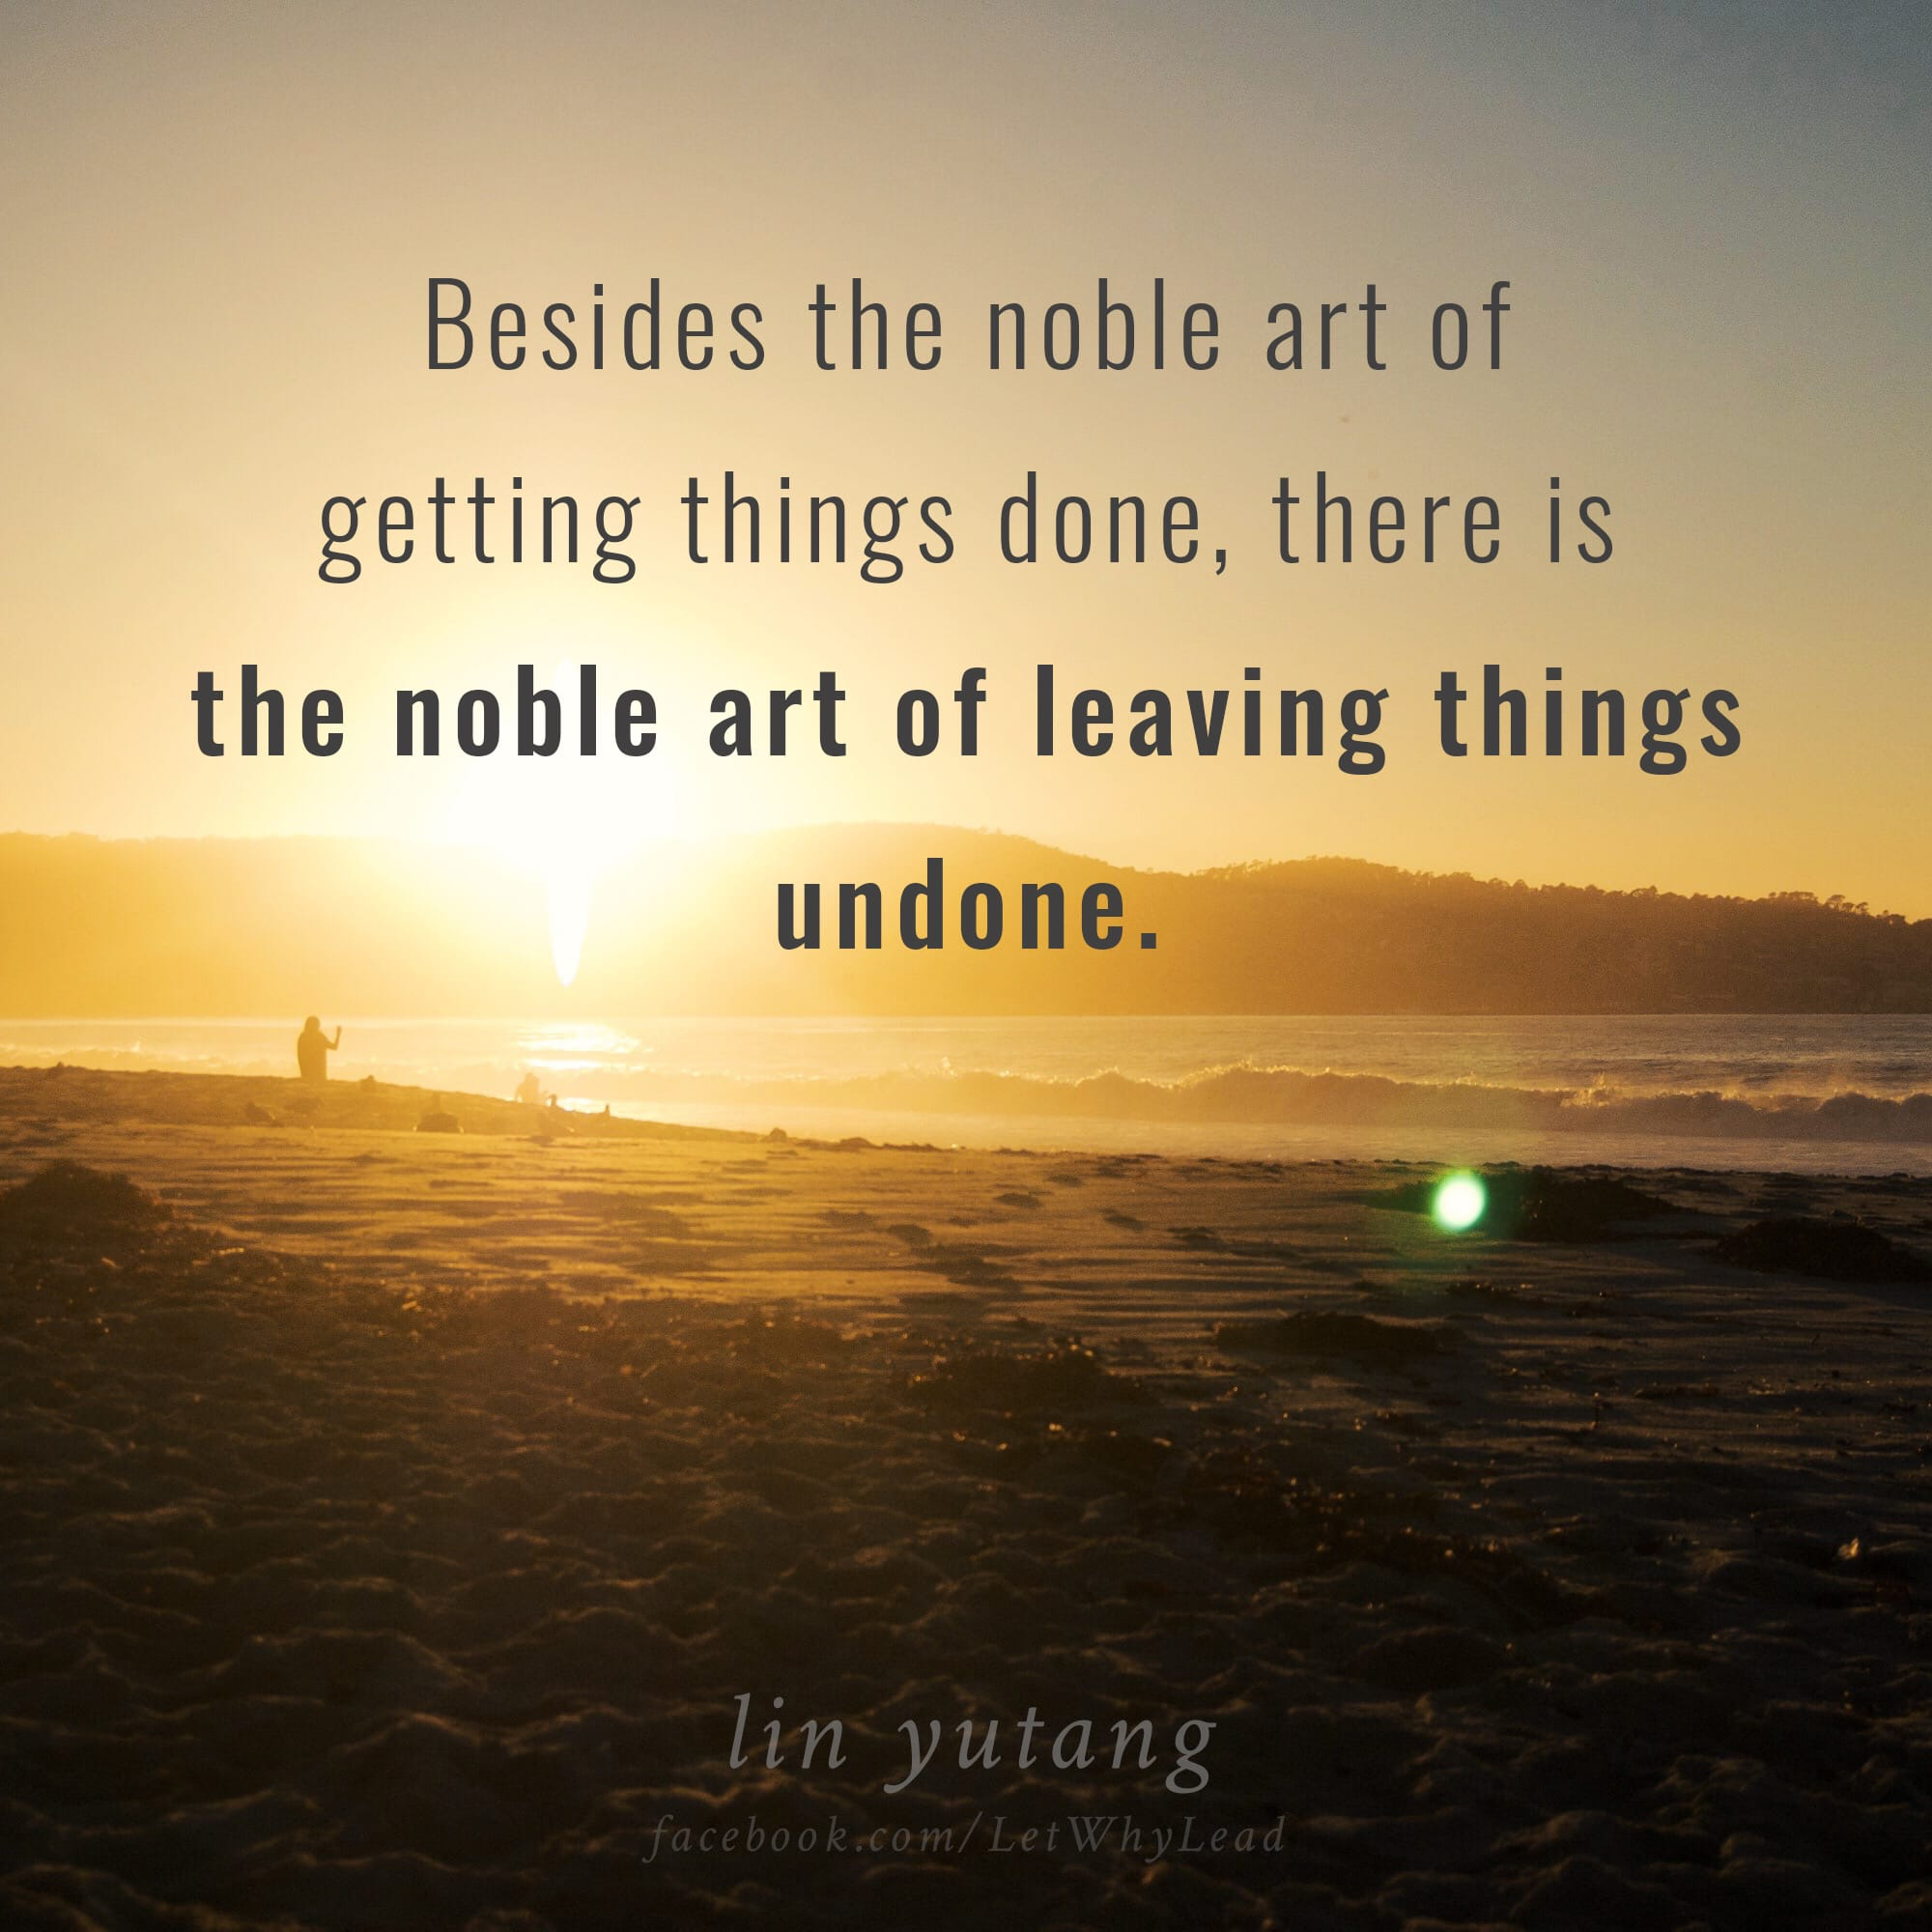 The art of leaving things undone.